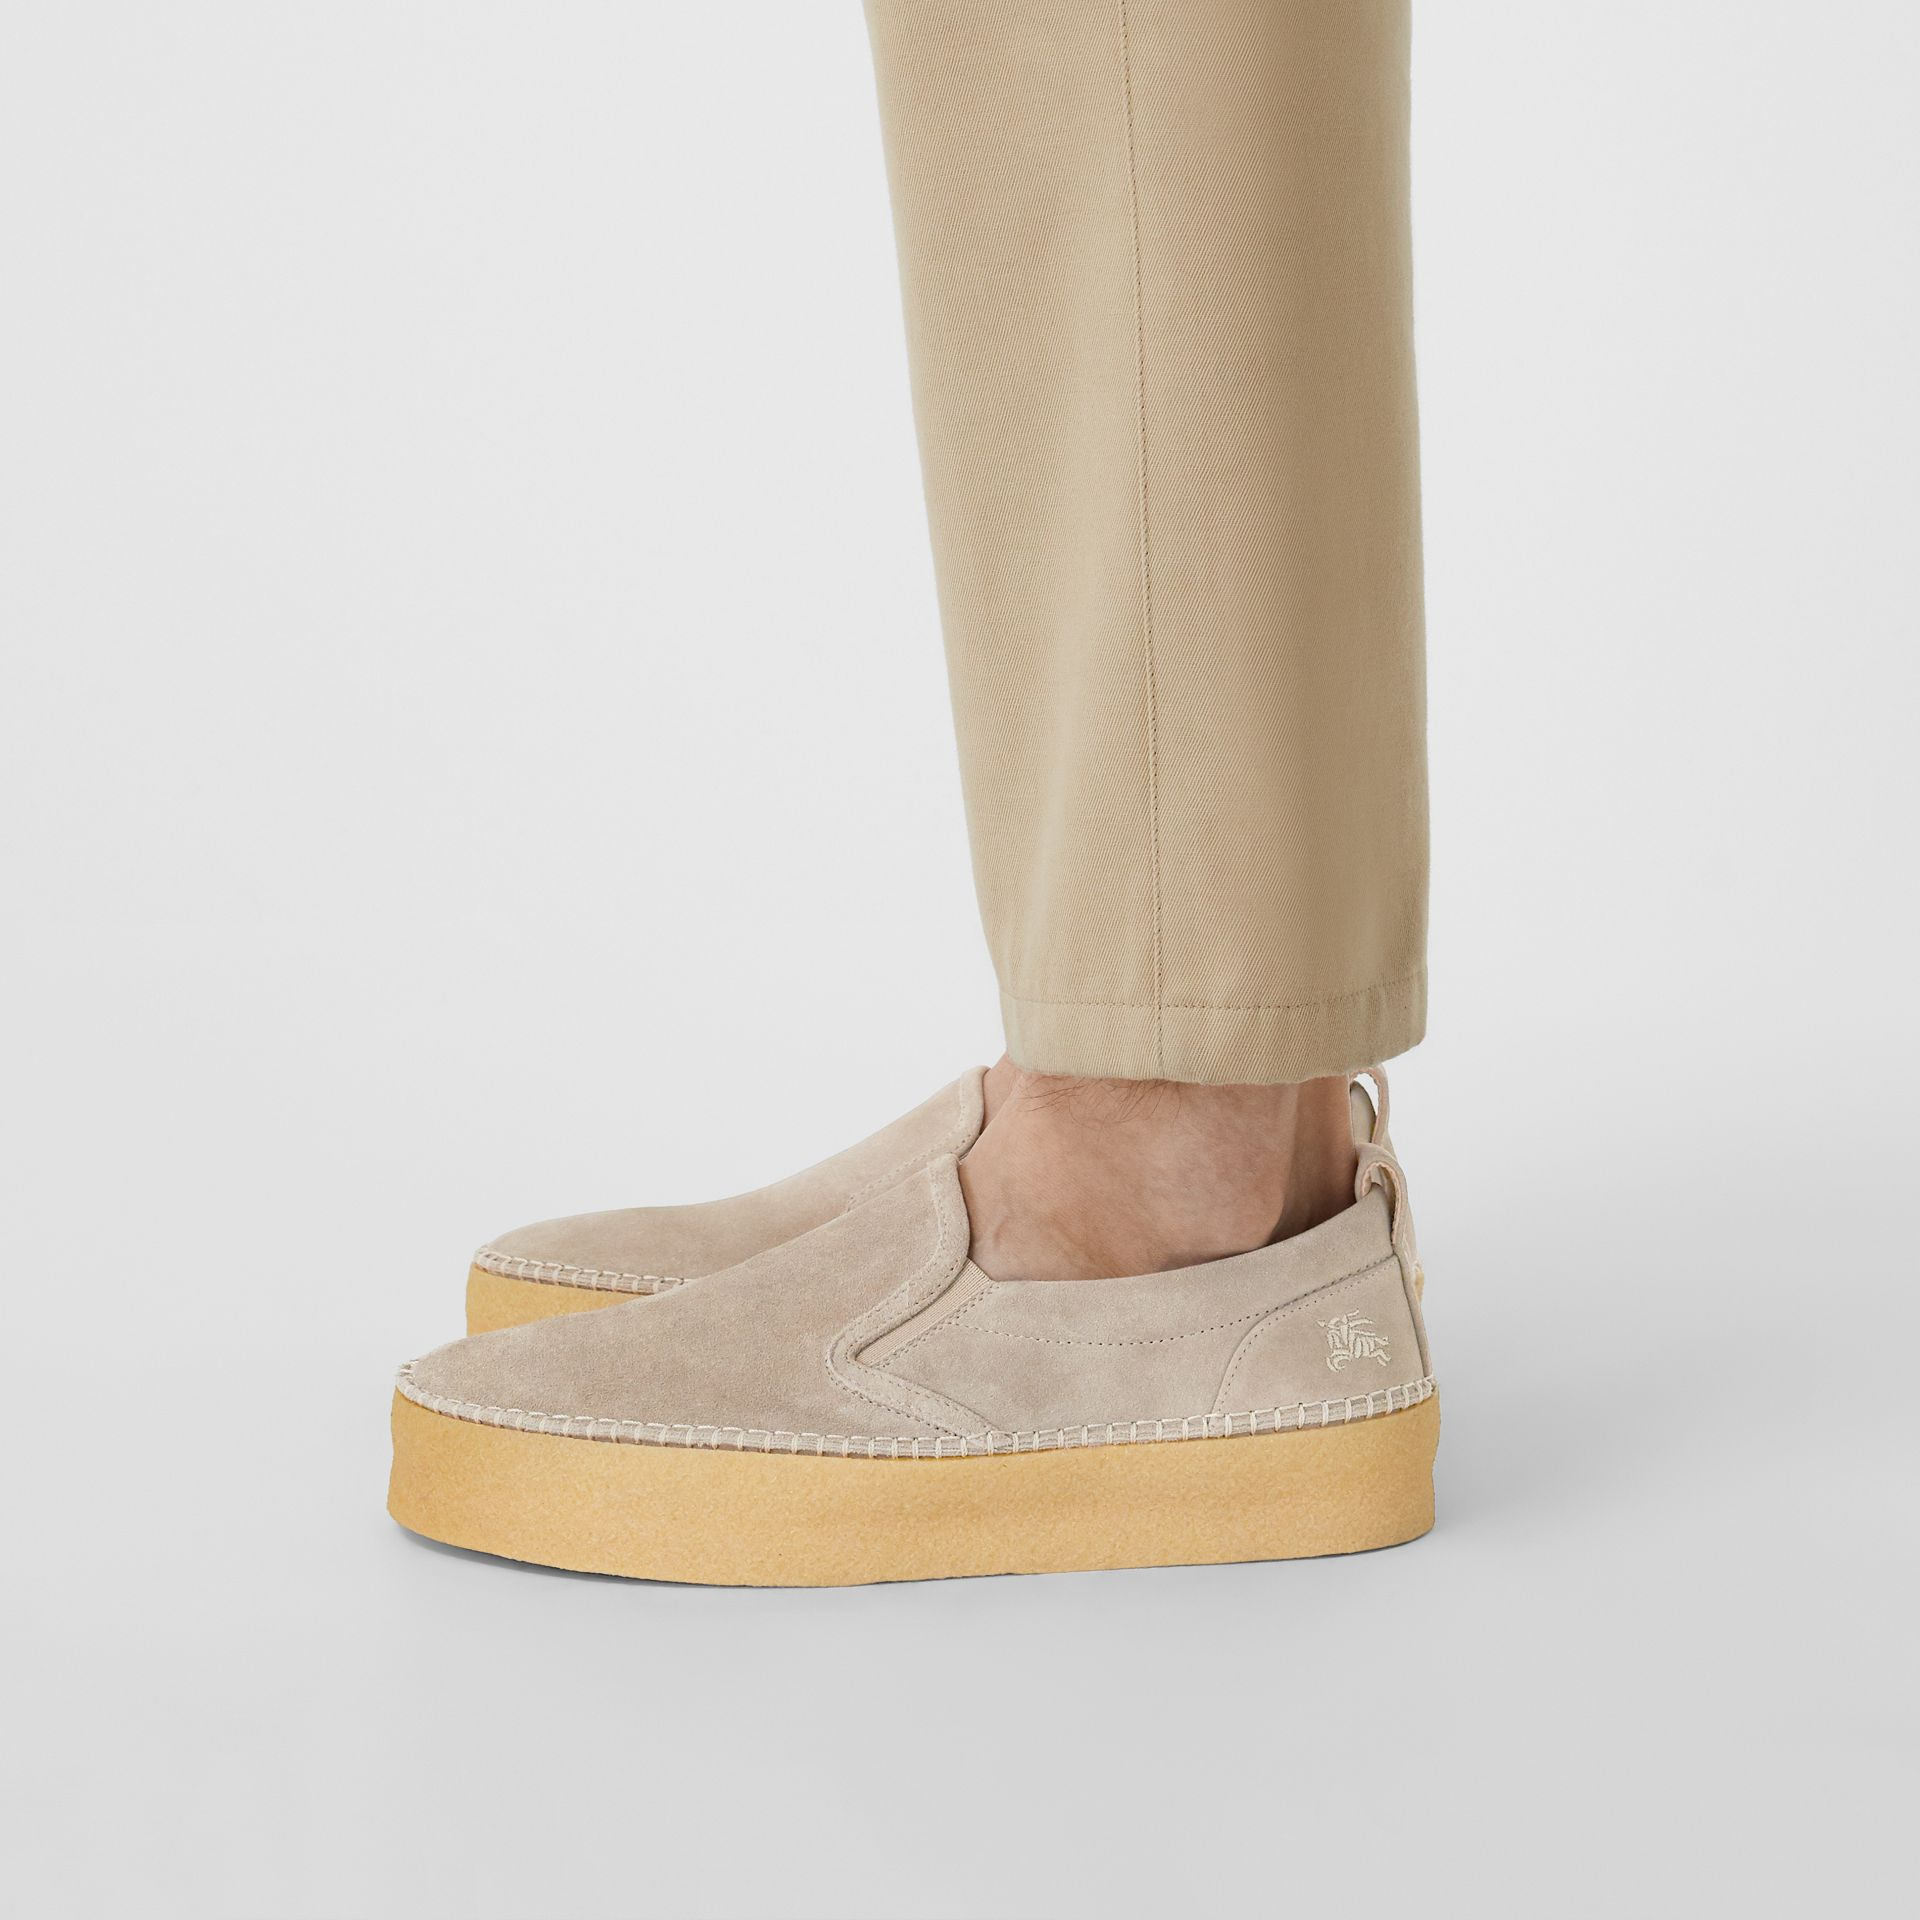 Suede Slip-on Sneakers in Sandy Beige - Men | Burberry - gallery image 2